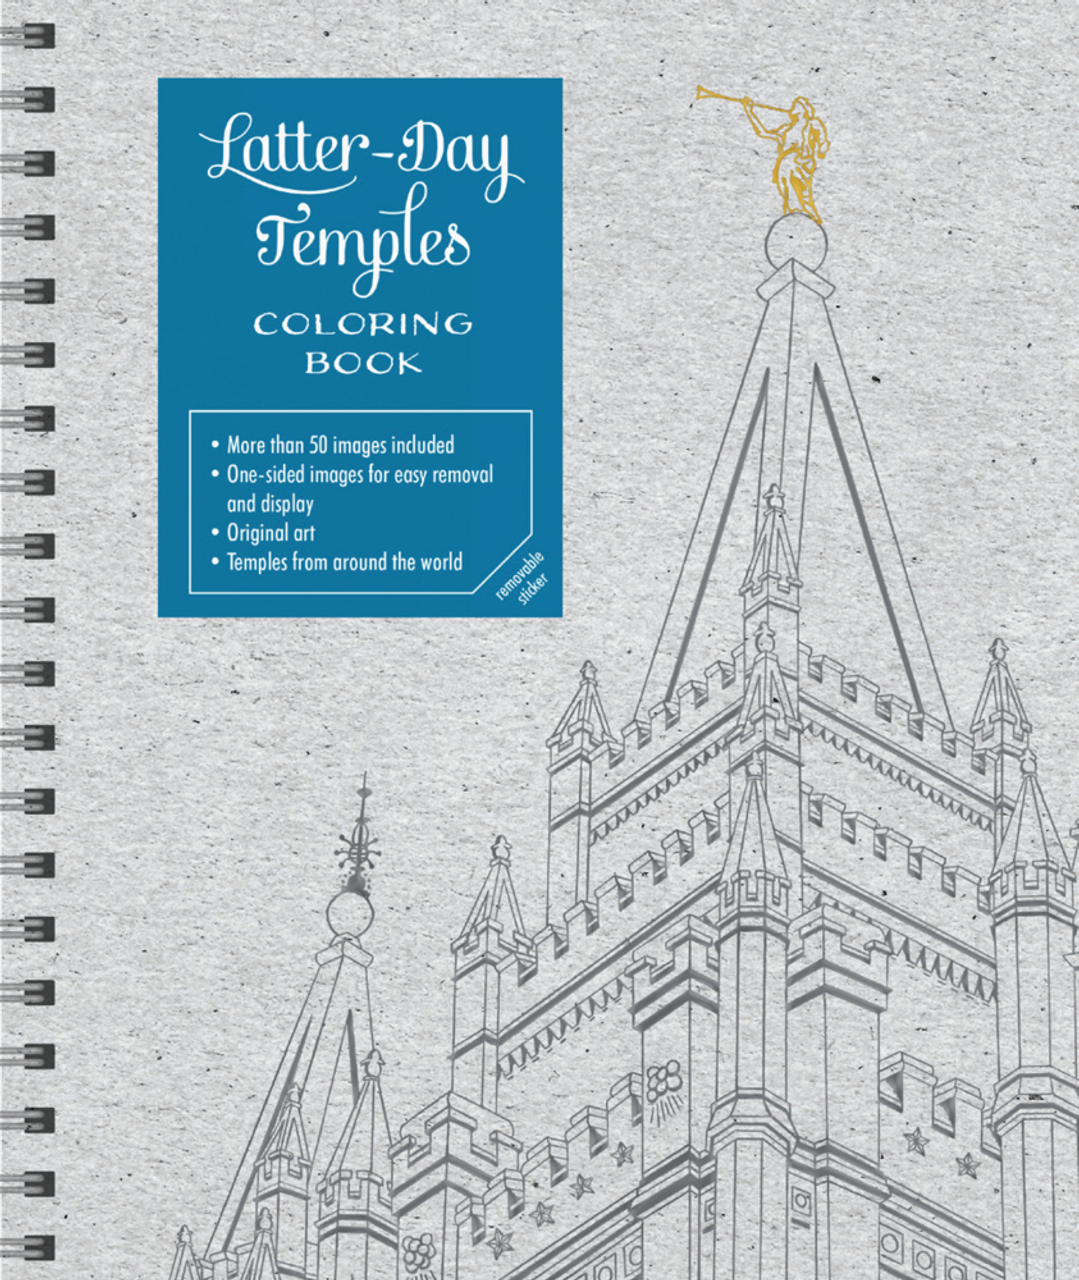 Latter-day Temples Coloring Book (Hardcover) *